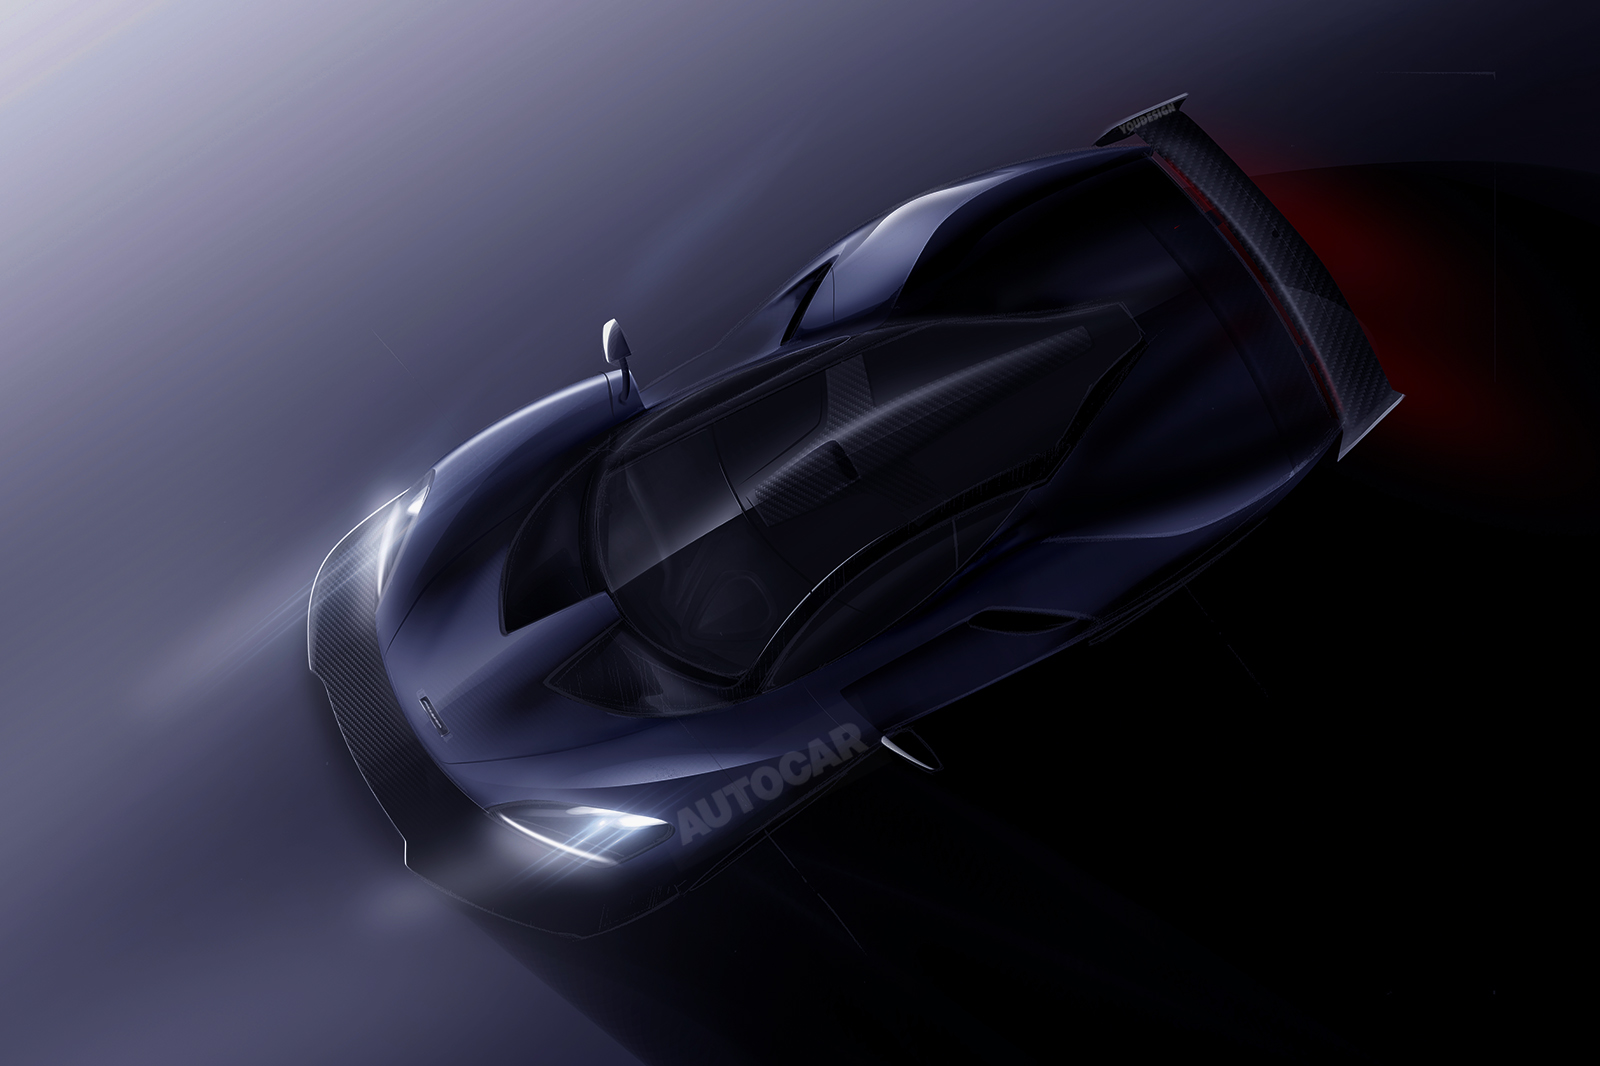 2017 789bhp mclaren p15 will eclipse performance of p1